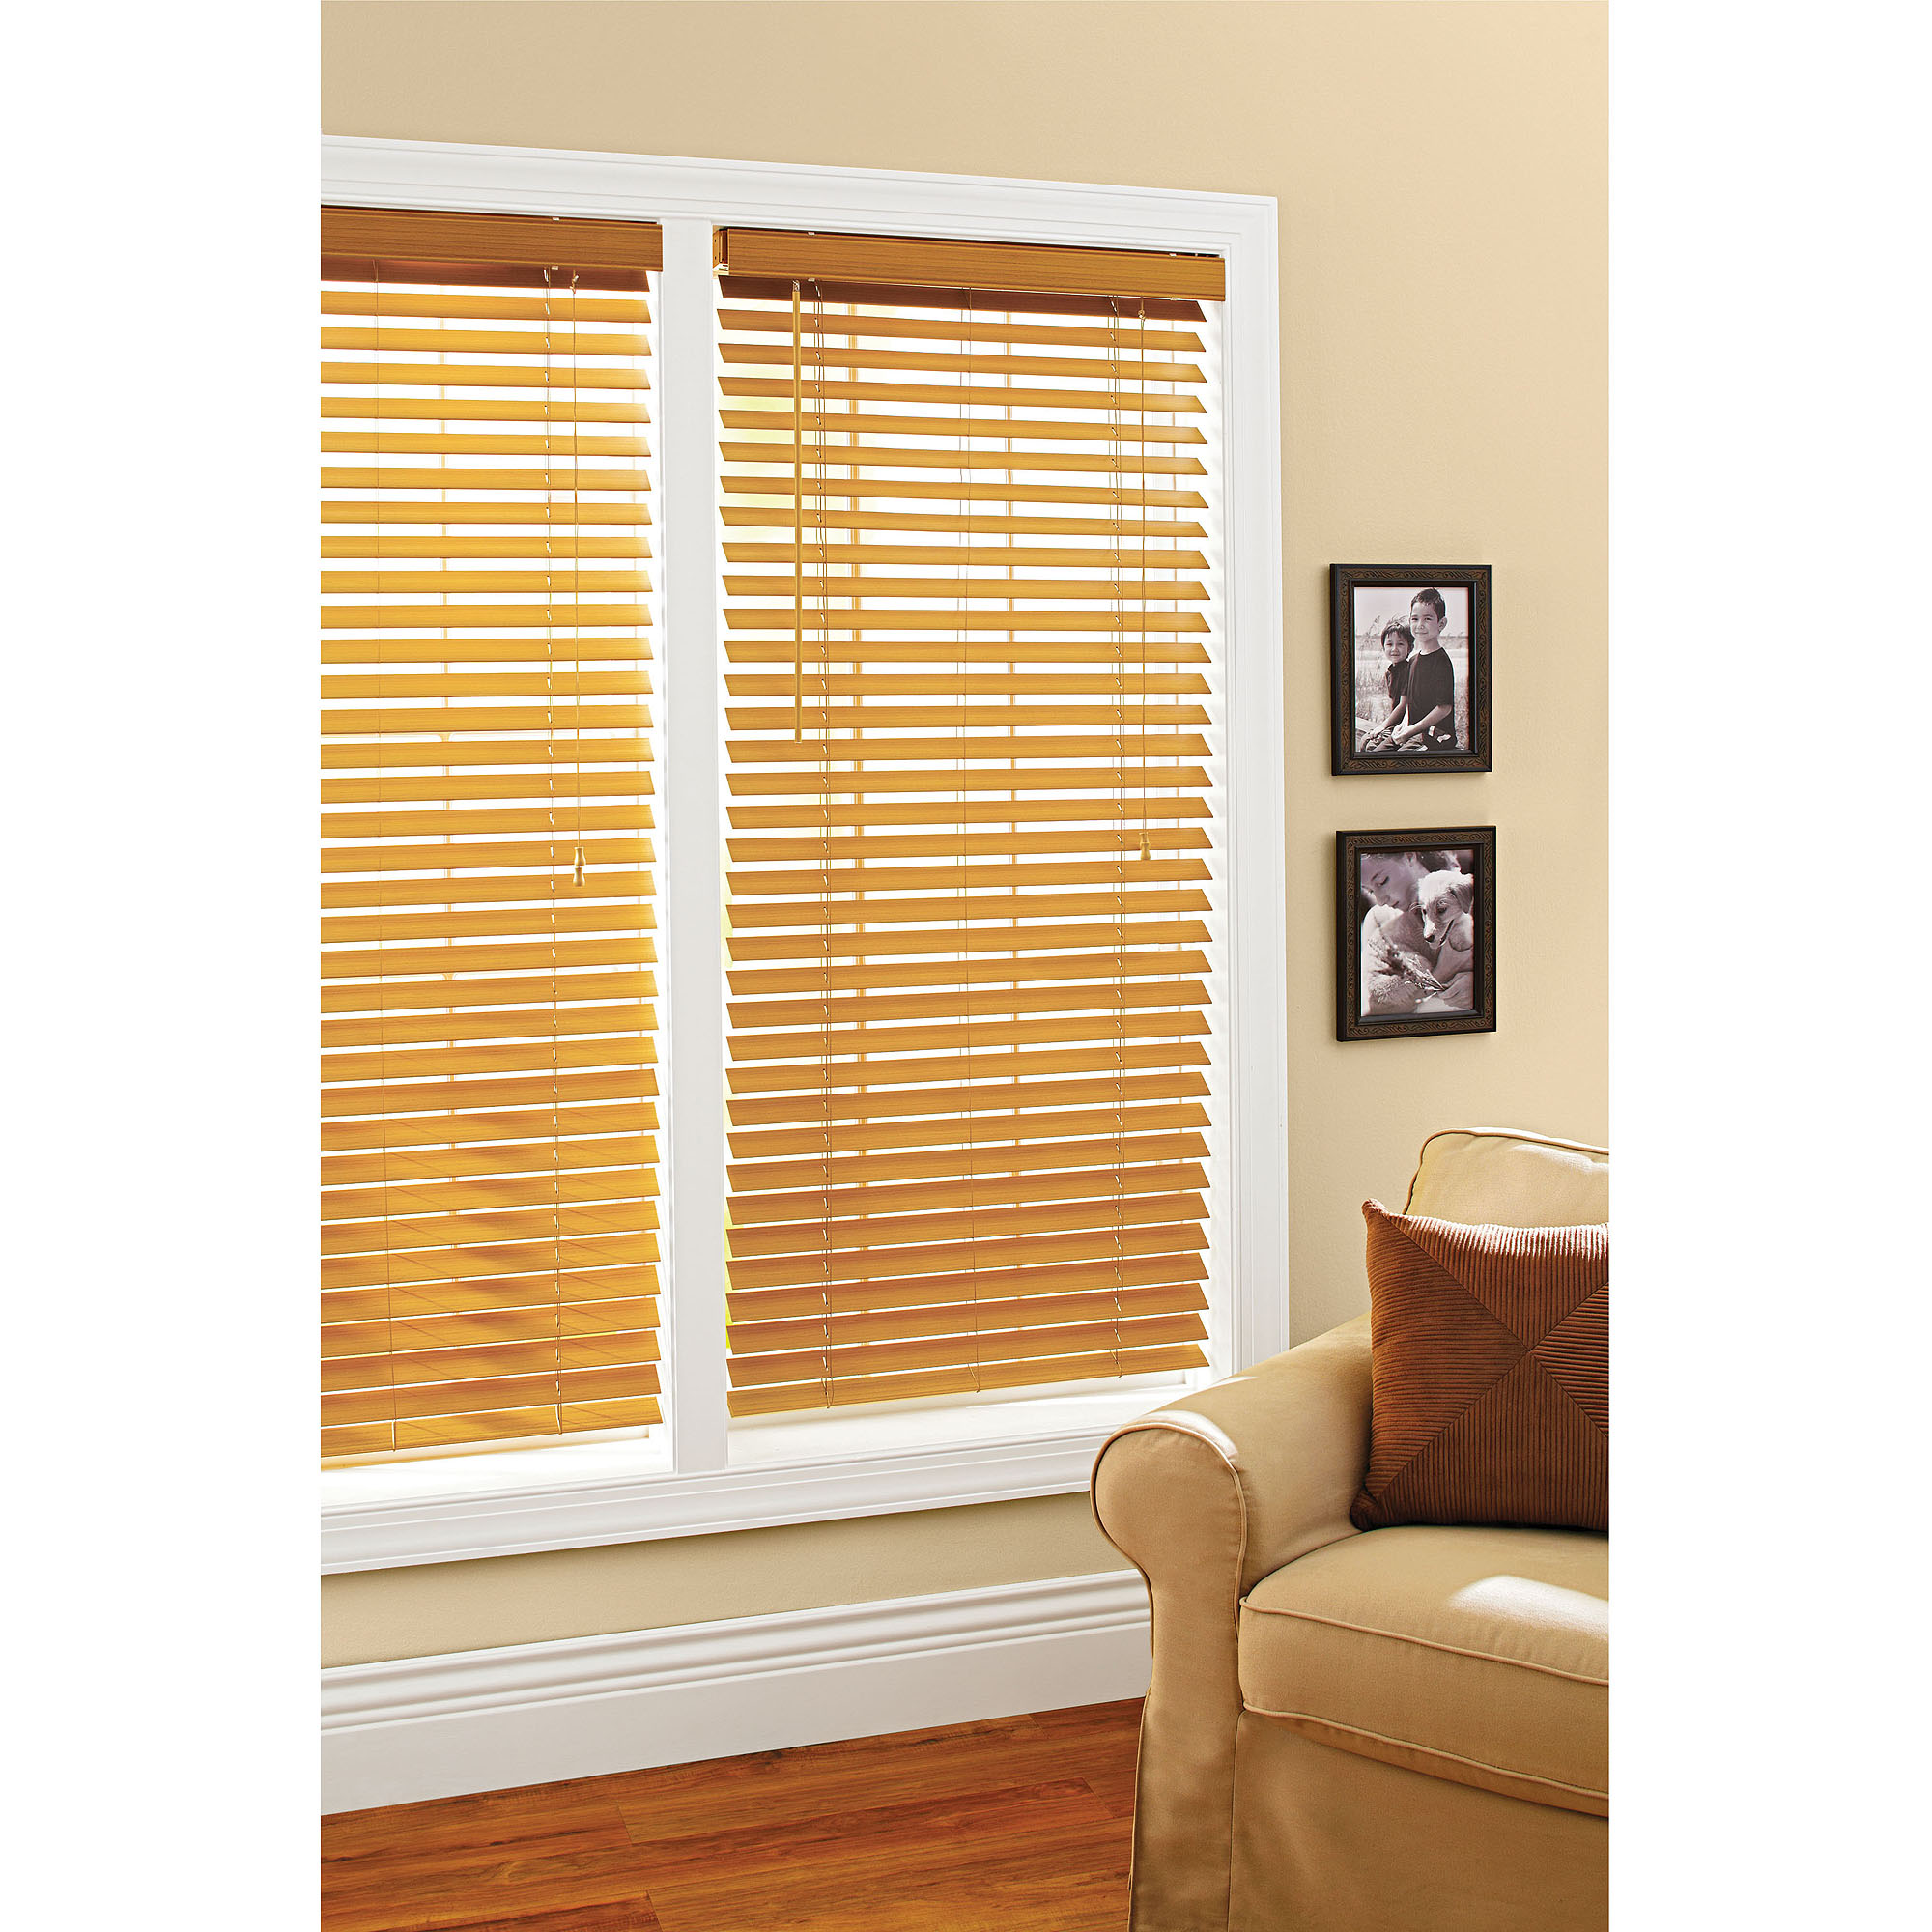 wooden window blinds better homes and gardens 2 SMGWDGD